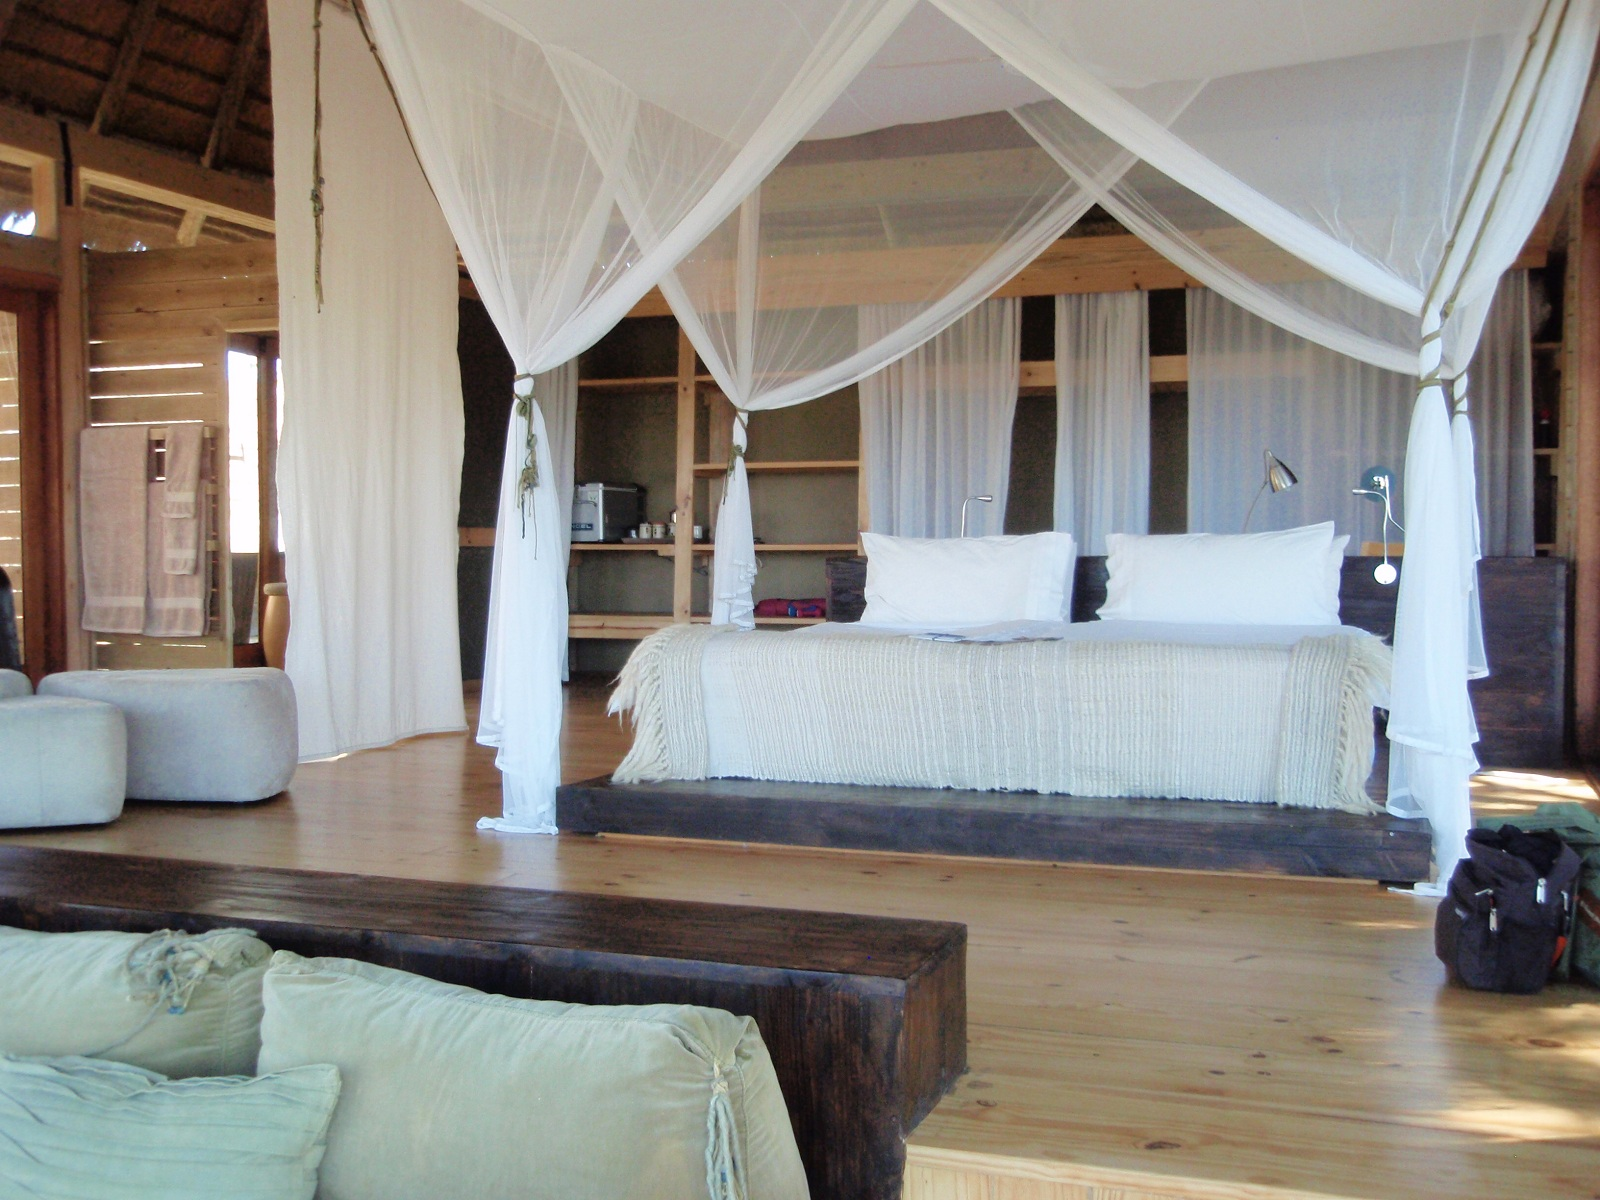 World Best Hotels, Botswana, Africa, Vumbura Plains suite